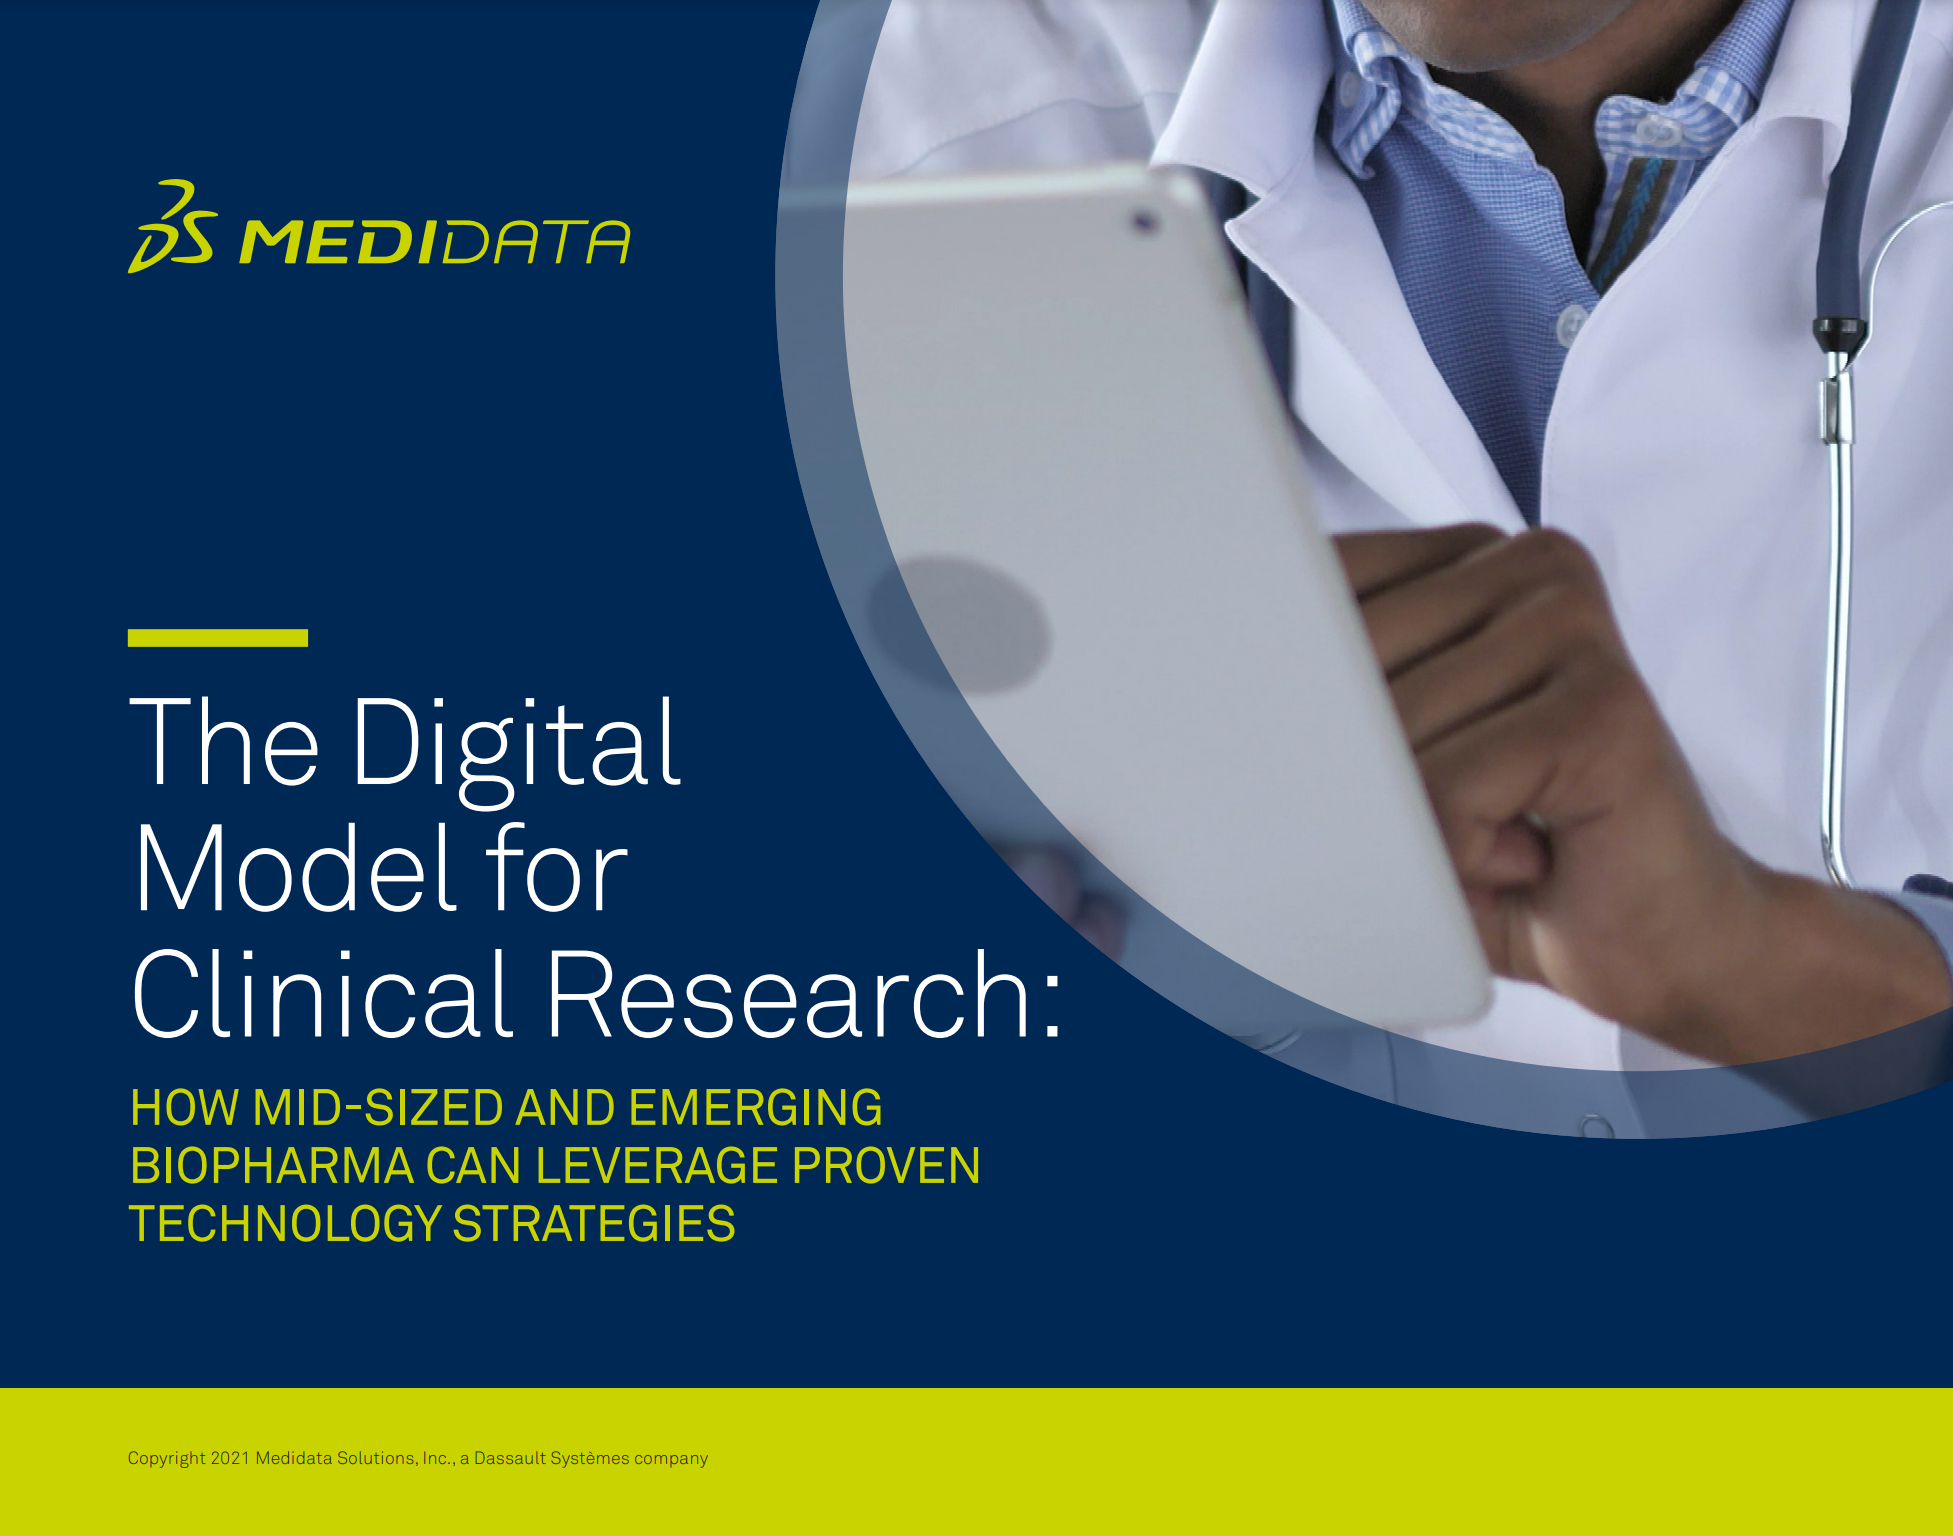 The Digital Model for Clinical Research: How Mid-Sized and Emerging Sponsors can Leverage the Clinical Trial Technology and Expertise to Succeed